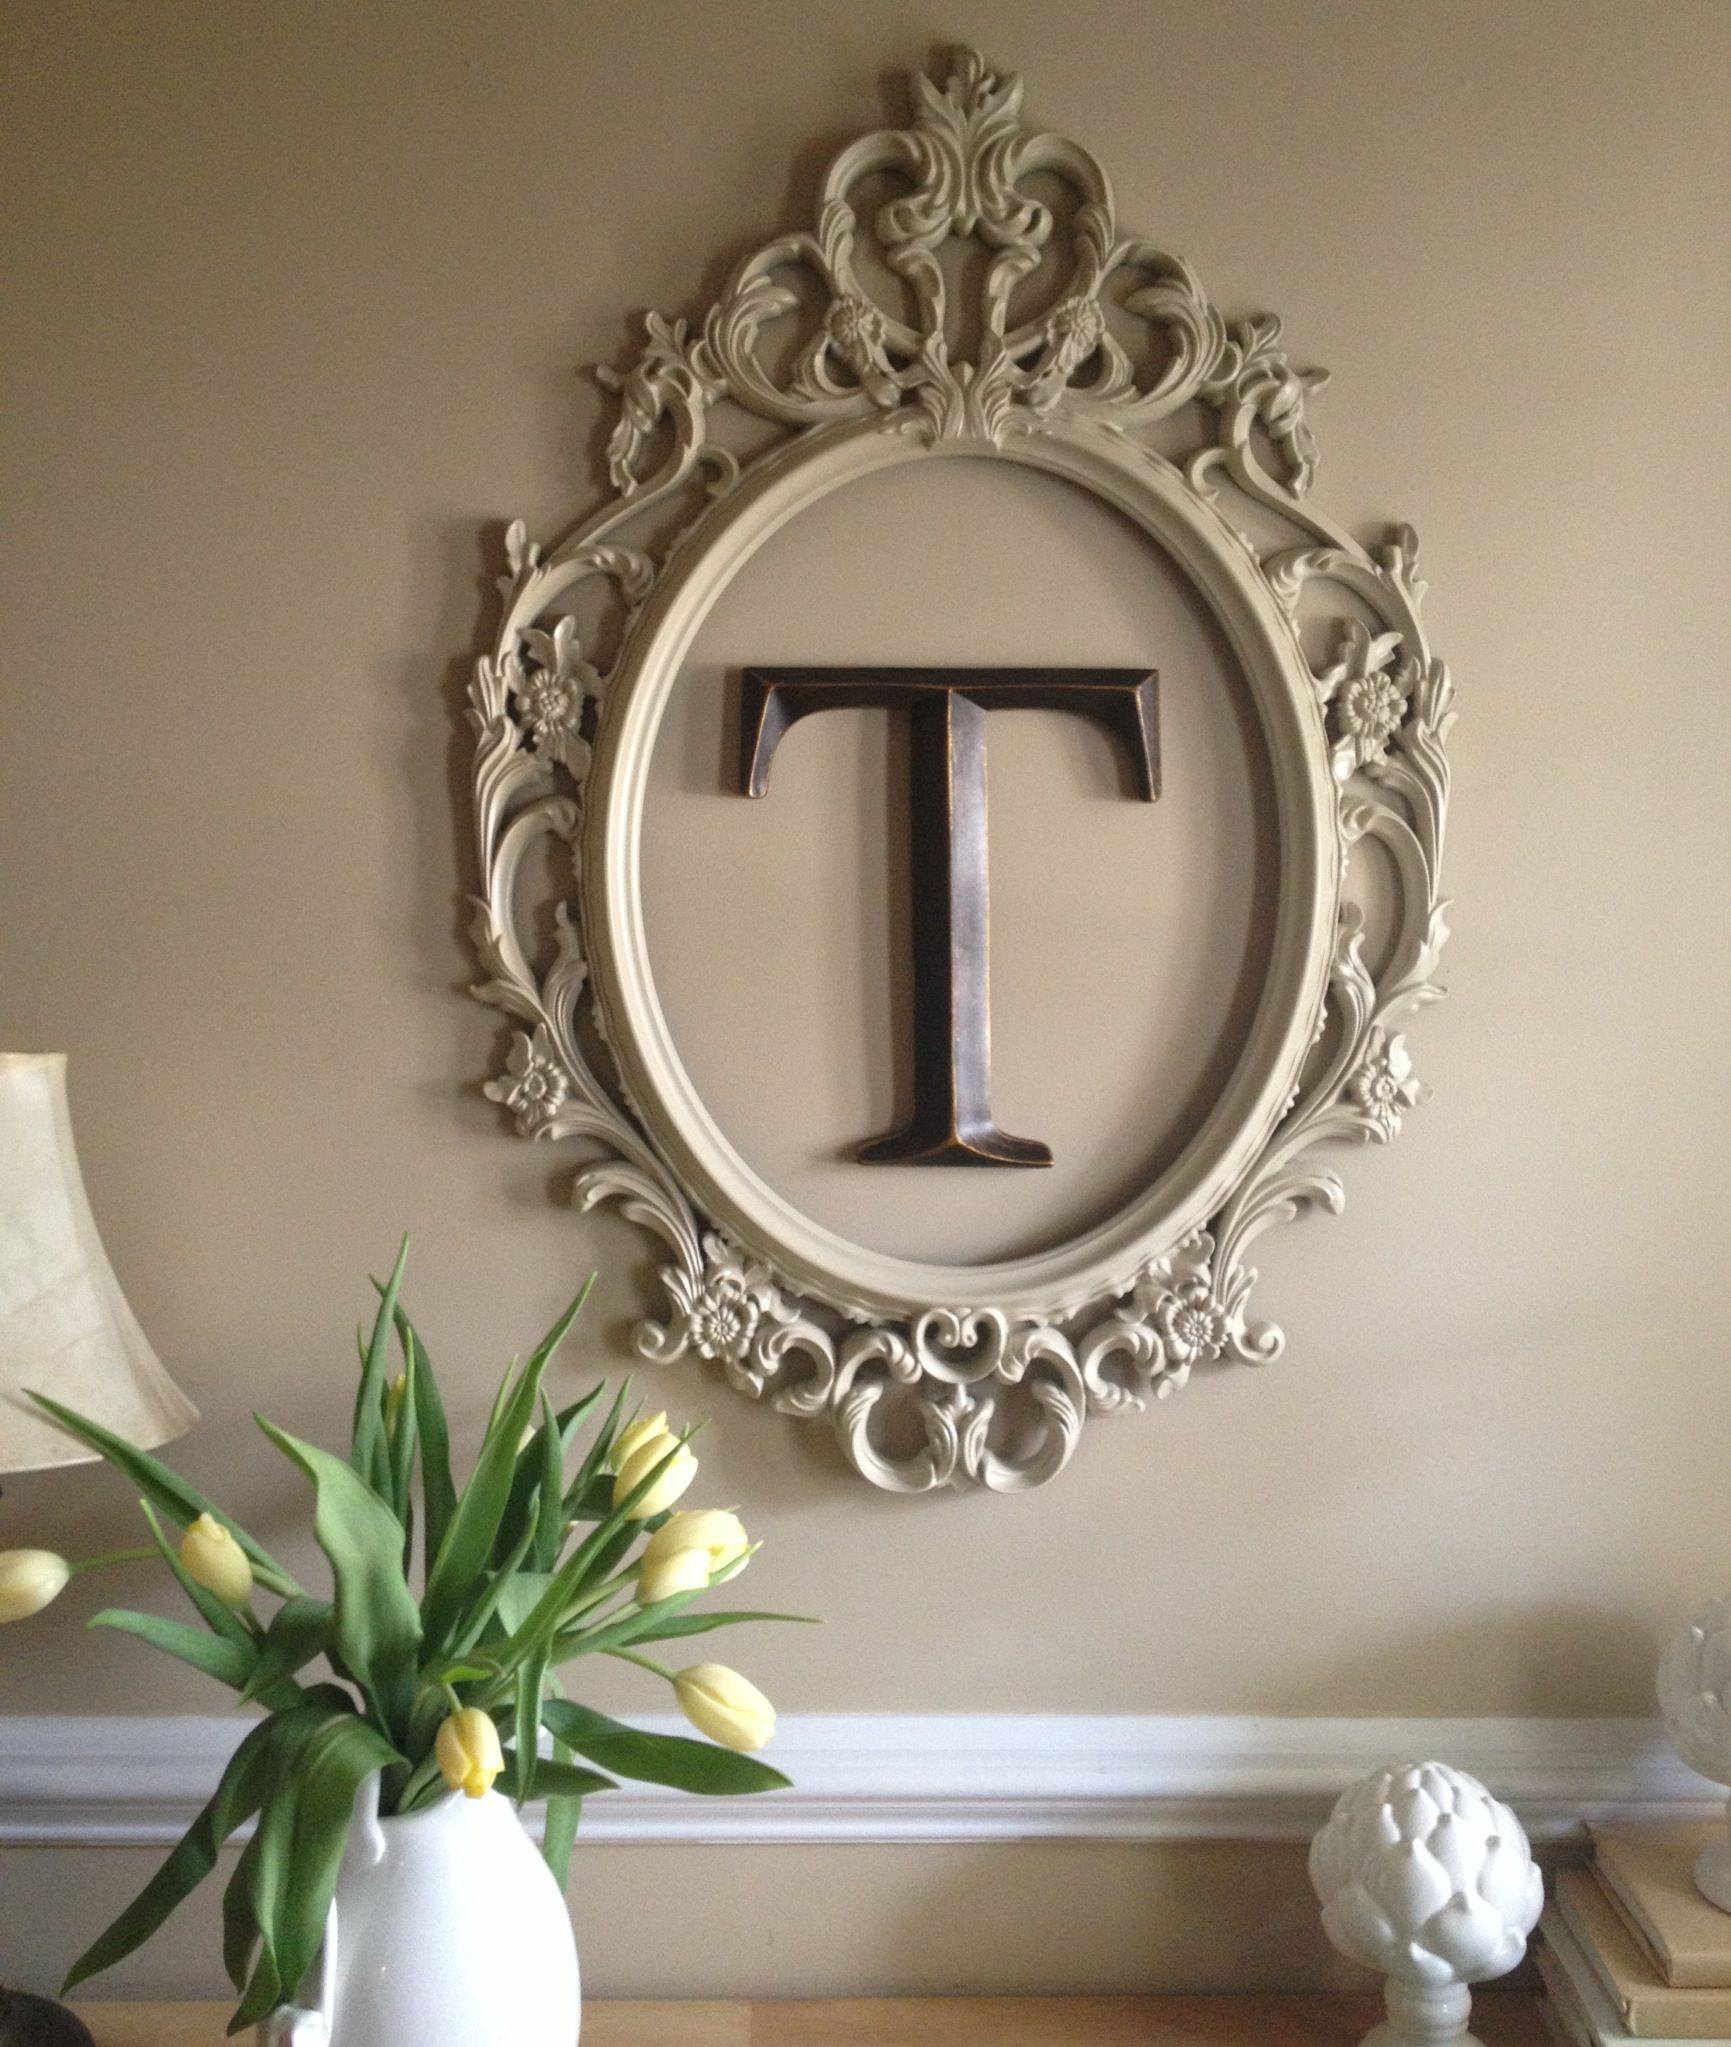 Spray painted ikea frame and monogram letter from hobby lobby at